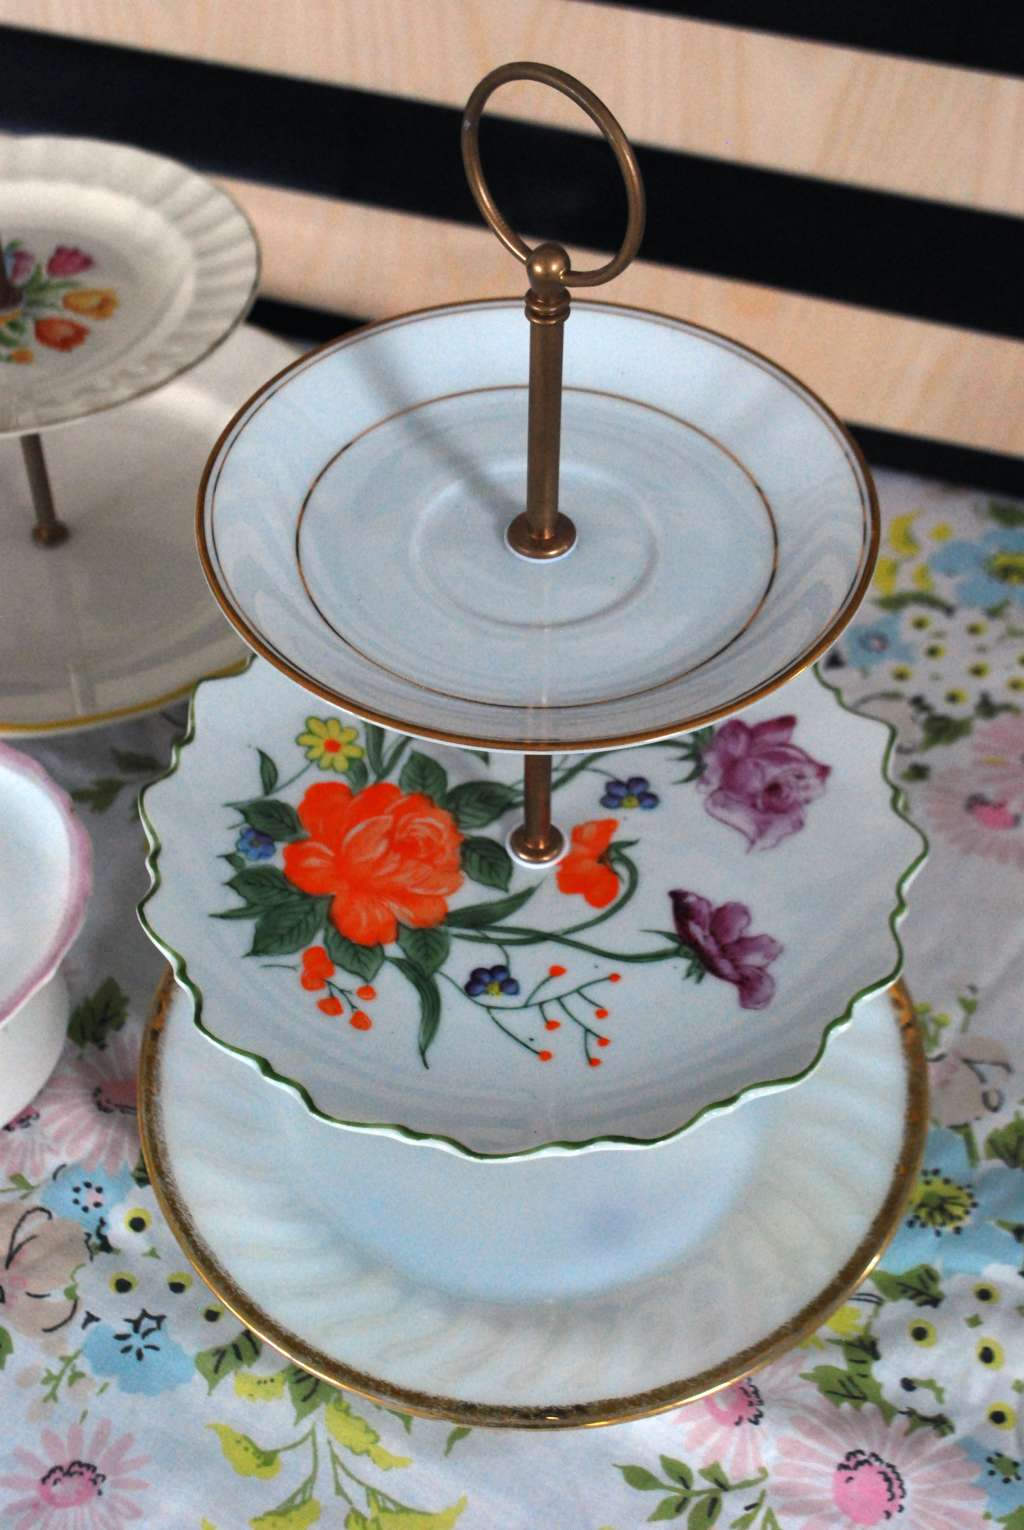 How To Make Your Own DIY Vintage Plate Tiered Dessert Stand